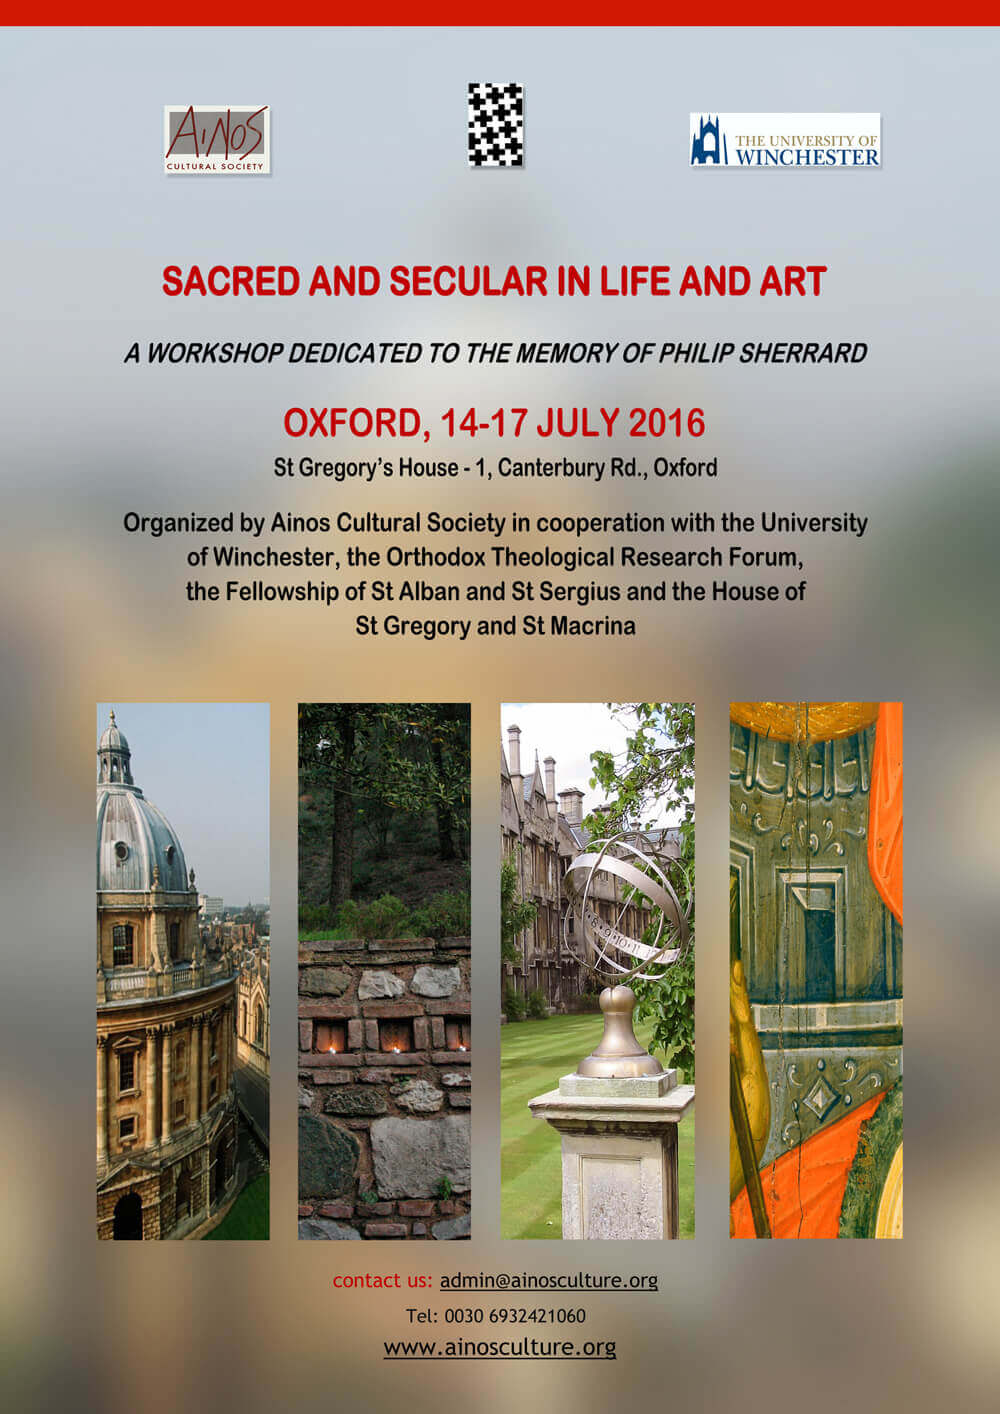 001 FINALE 07_ 06 POSTER OXFORD THE SACRED IN LIFE AND ART 2016